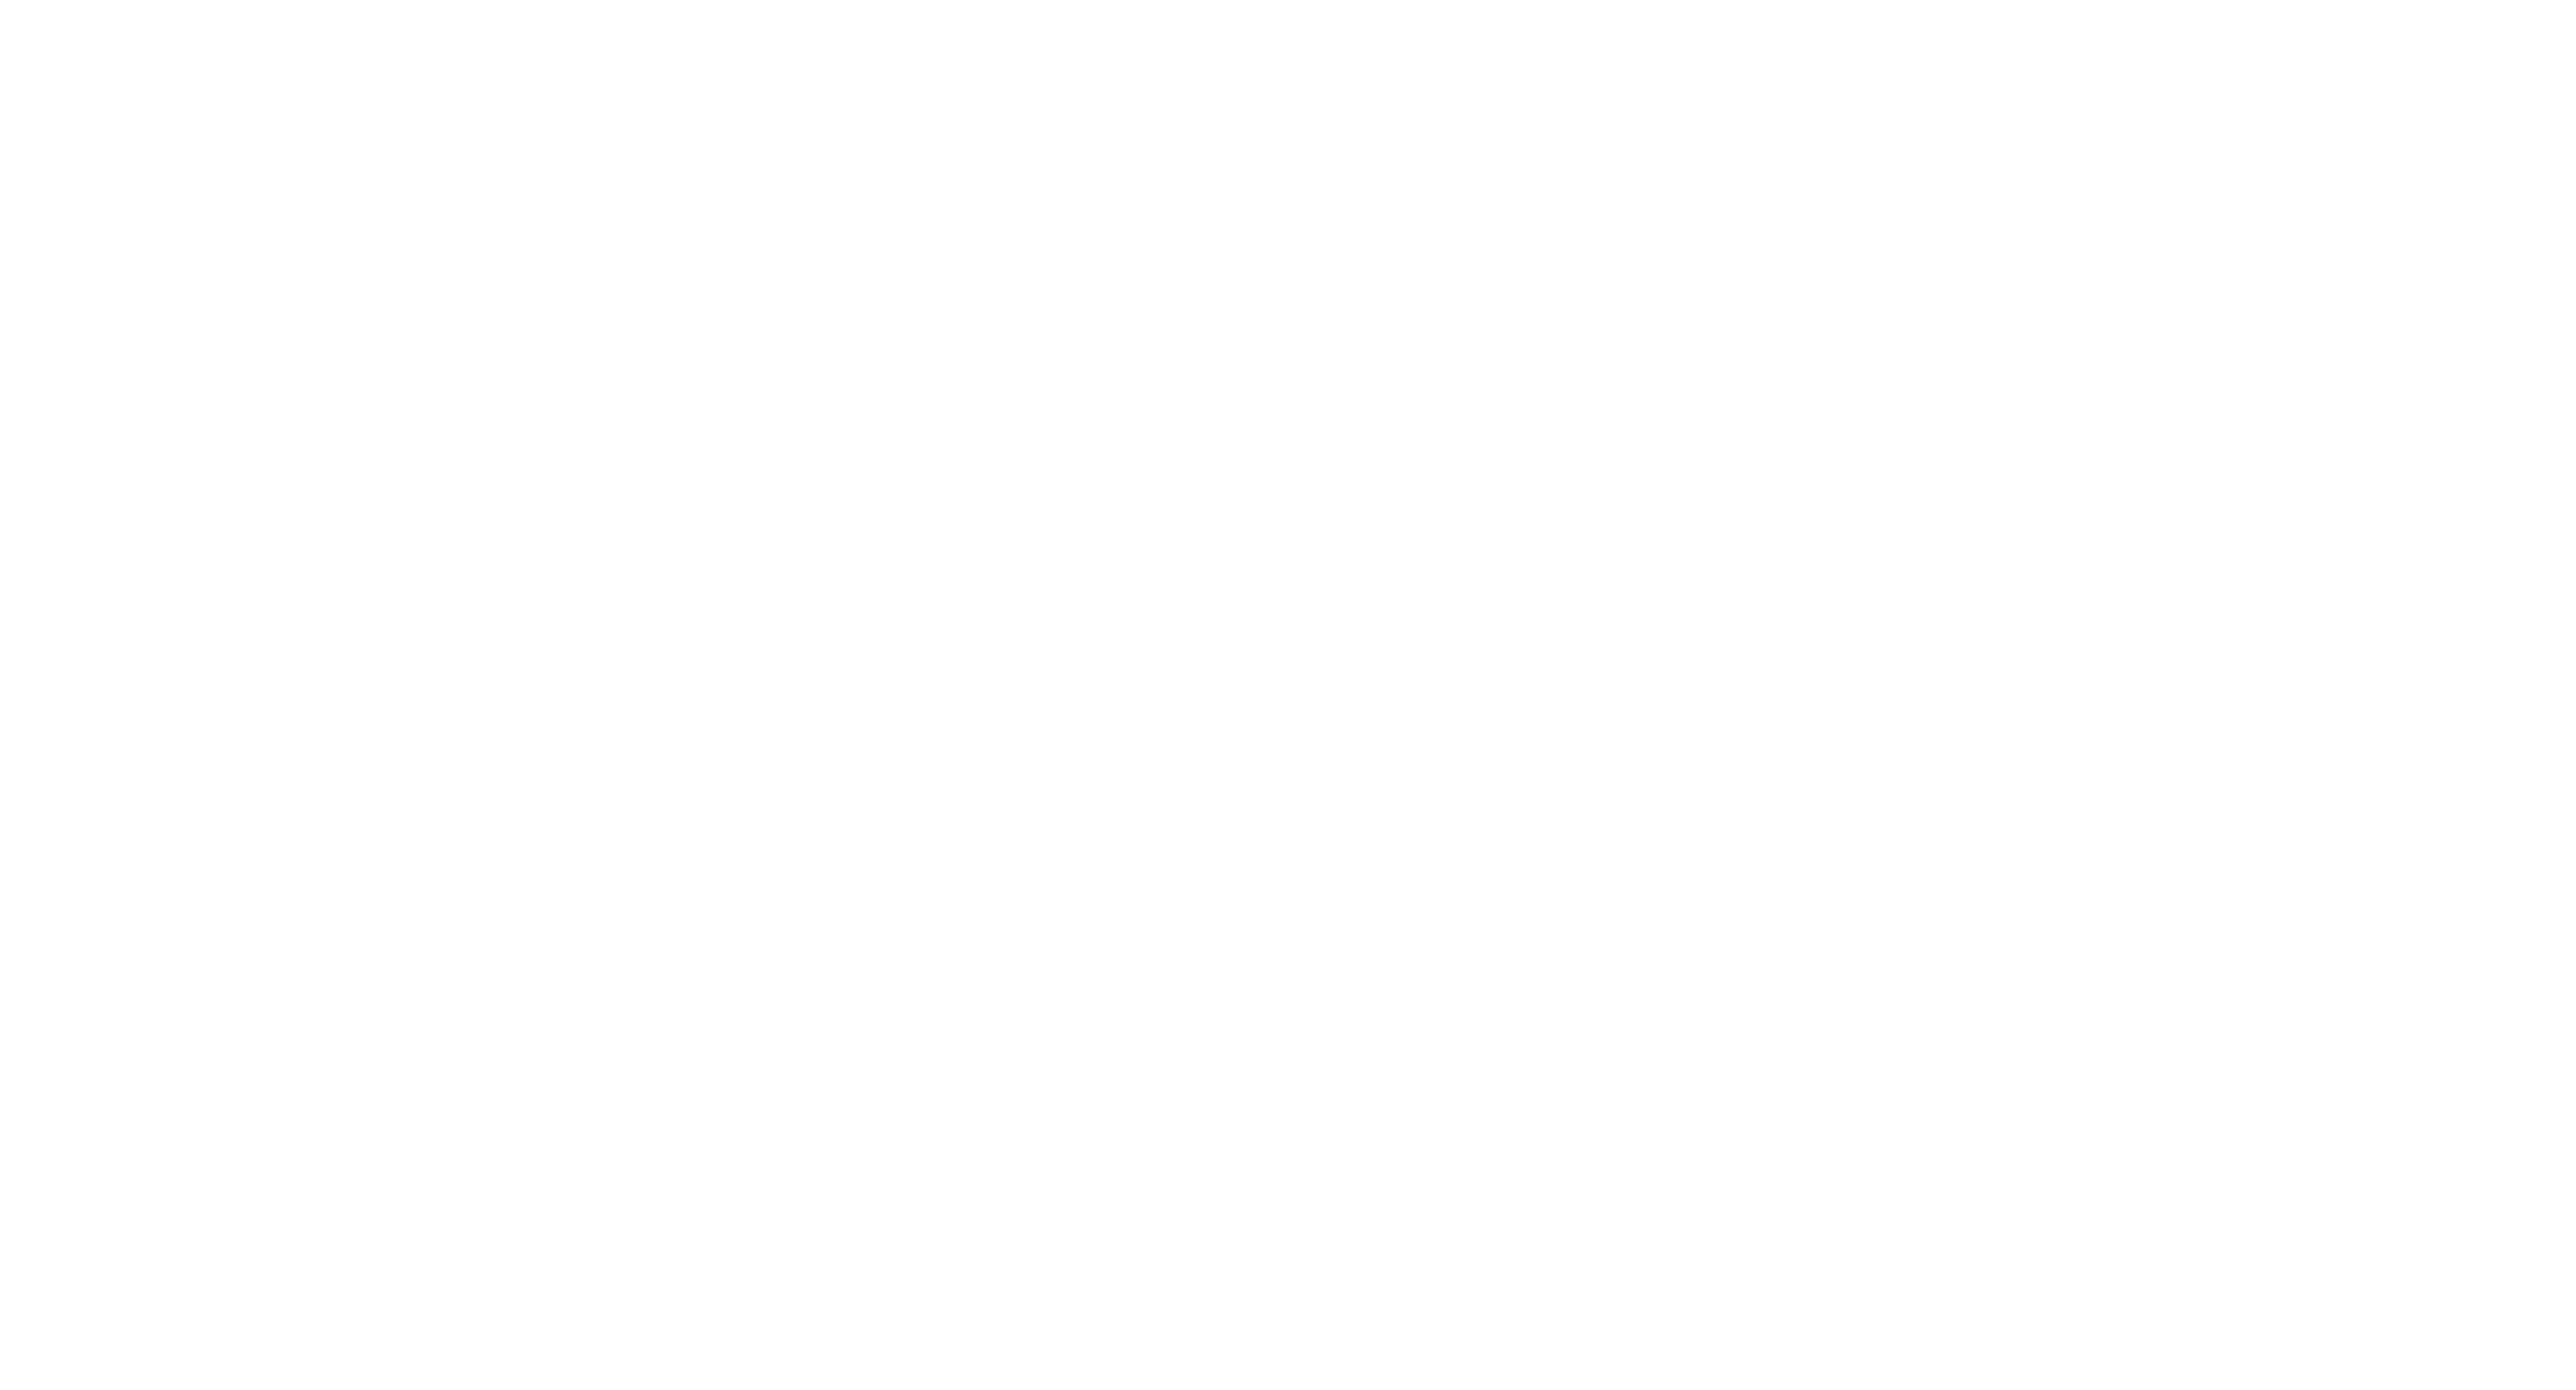 West Lothian Liberal Democrats